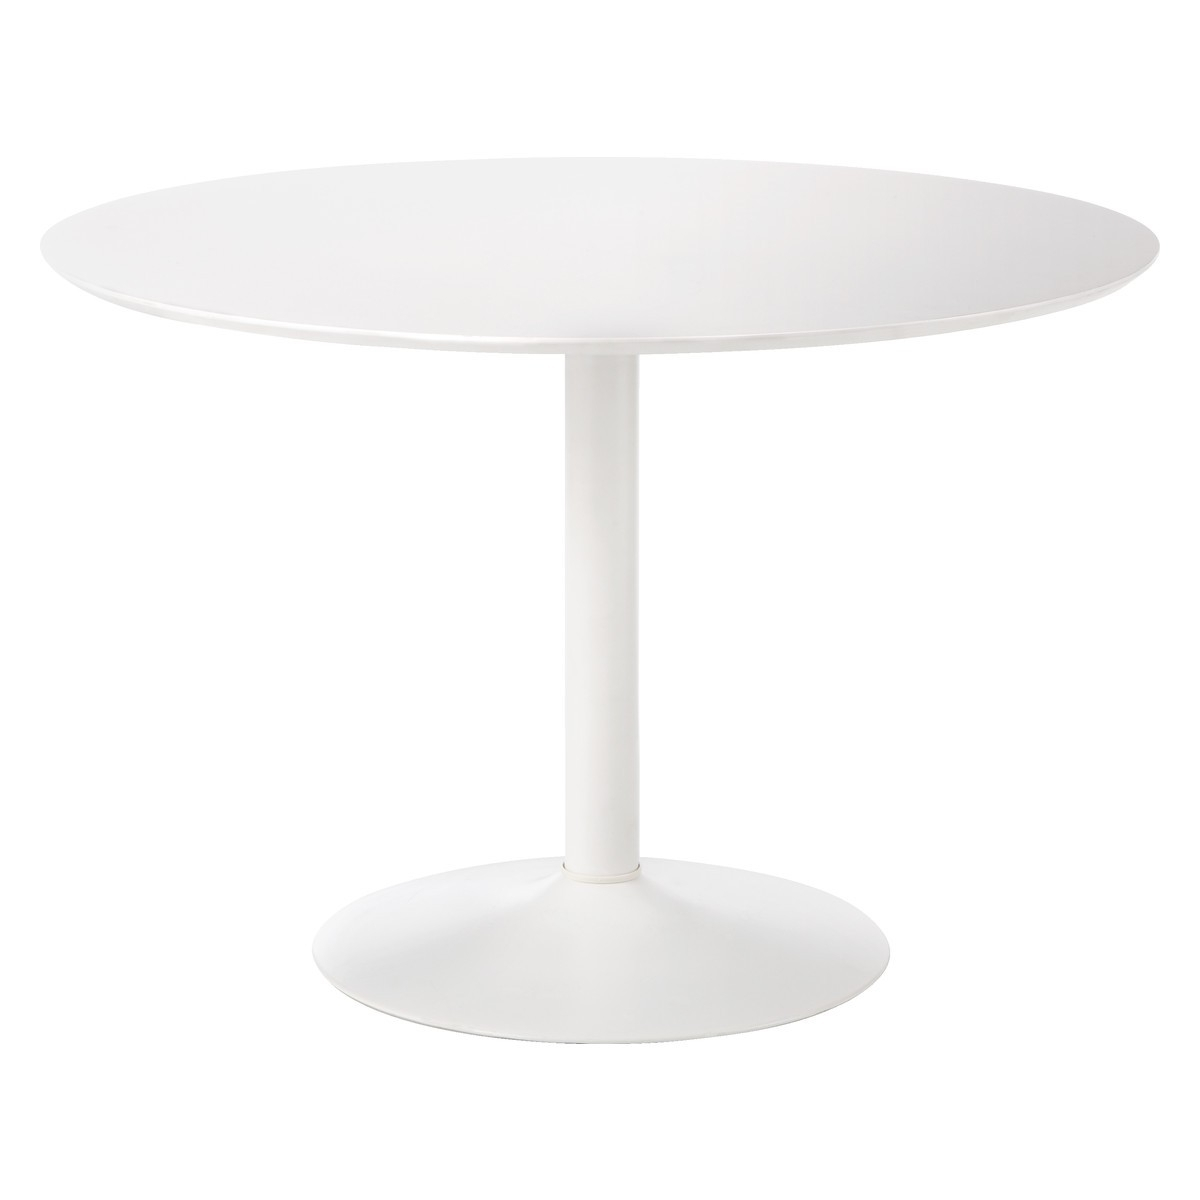 Buy Now At Habitat Uk Intended For Round White Dining Tables (View 2 of 25)